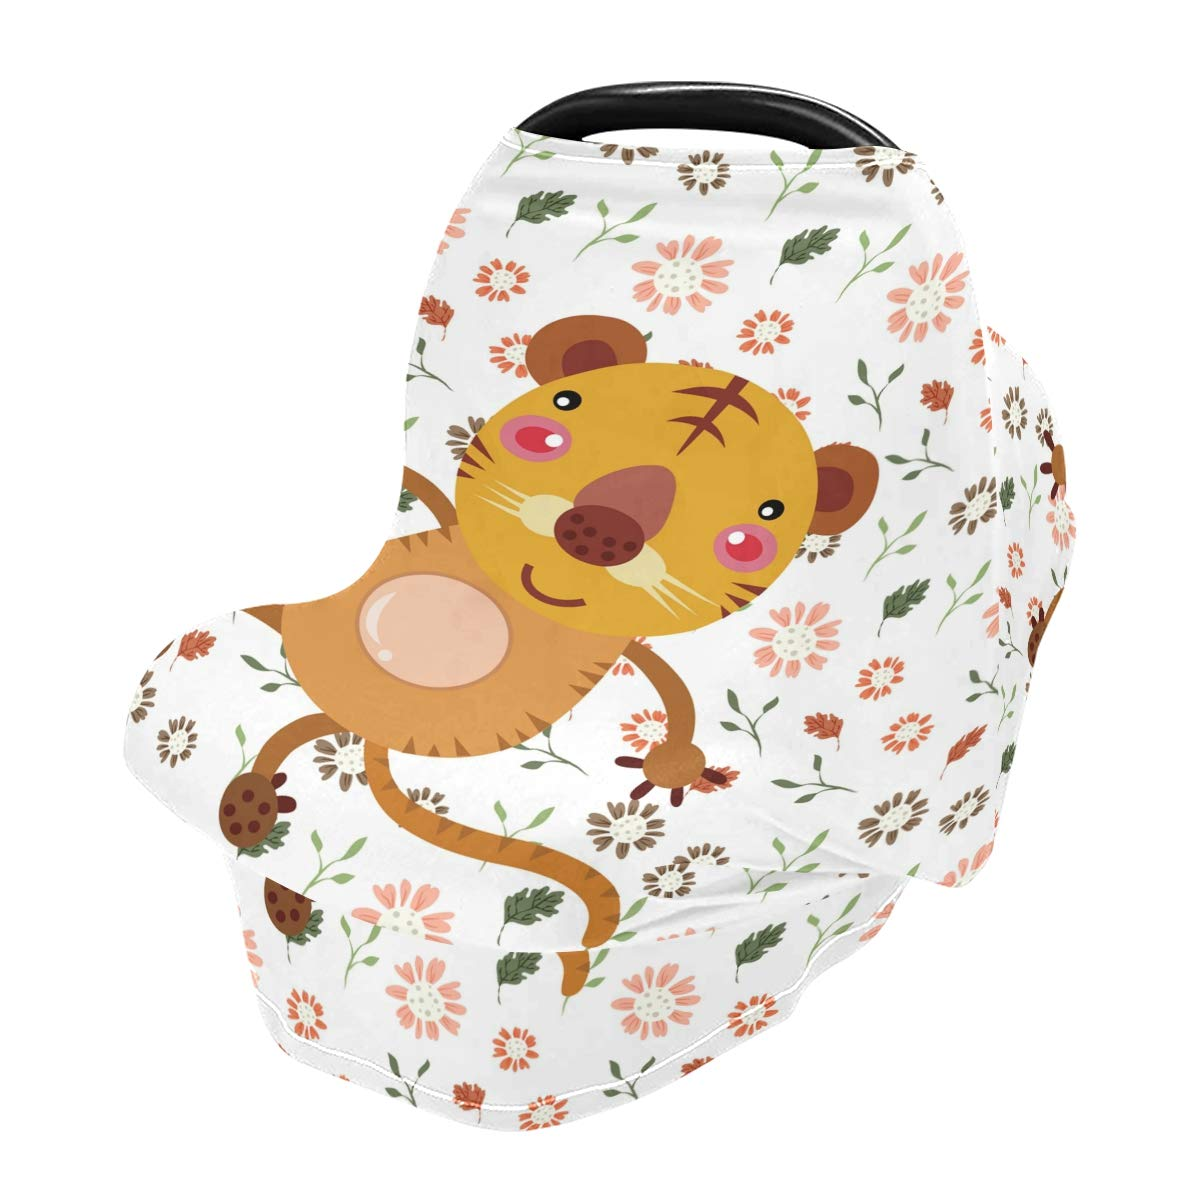 Nursing Cover Cute Mouse Breastfeeding Soft Carseat Canopy Multi Use for Baby Car Seat Covers Canopy Shopping Cart Cover Scarf Light Blanket Stroller Cover